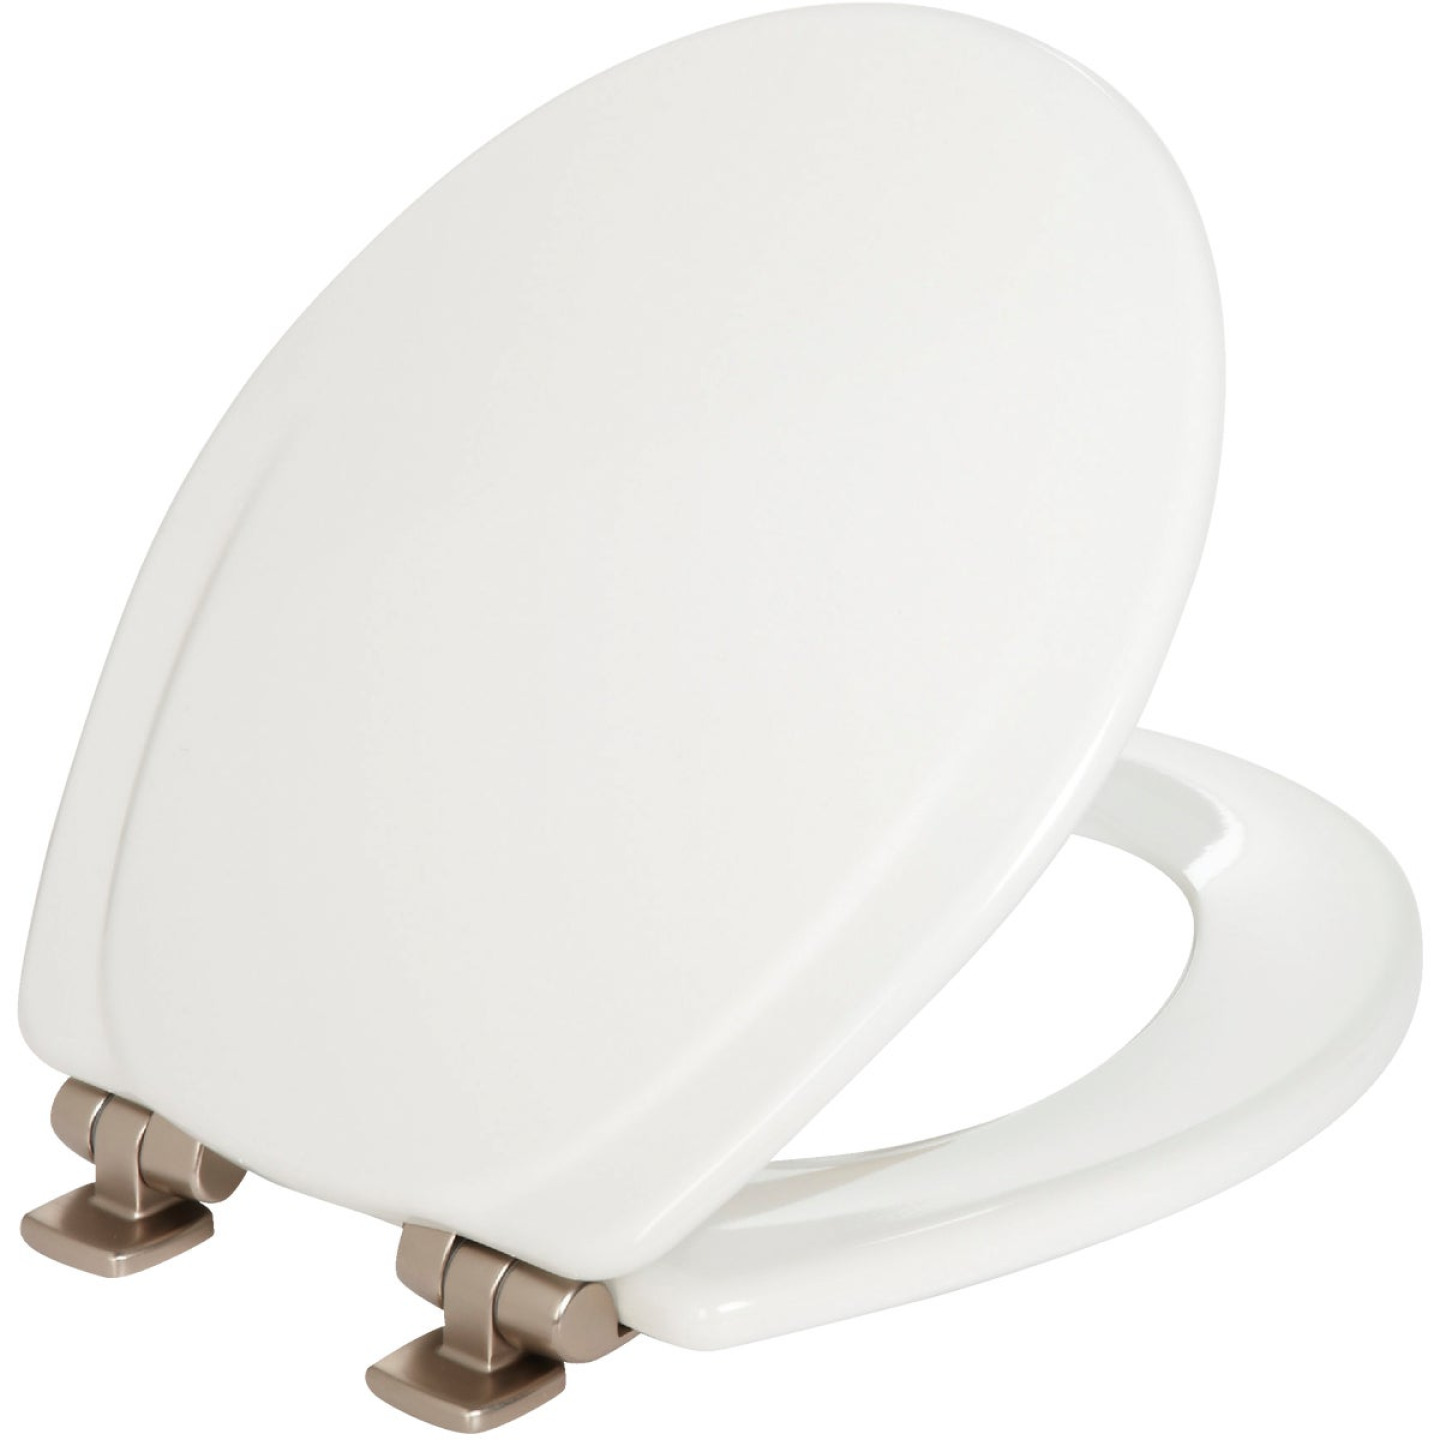 Mayfair Round Closed Front Slow Close White Wood Toilet Seat Image 1